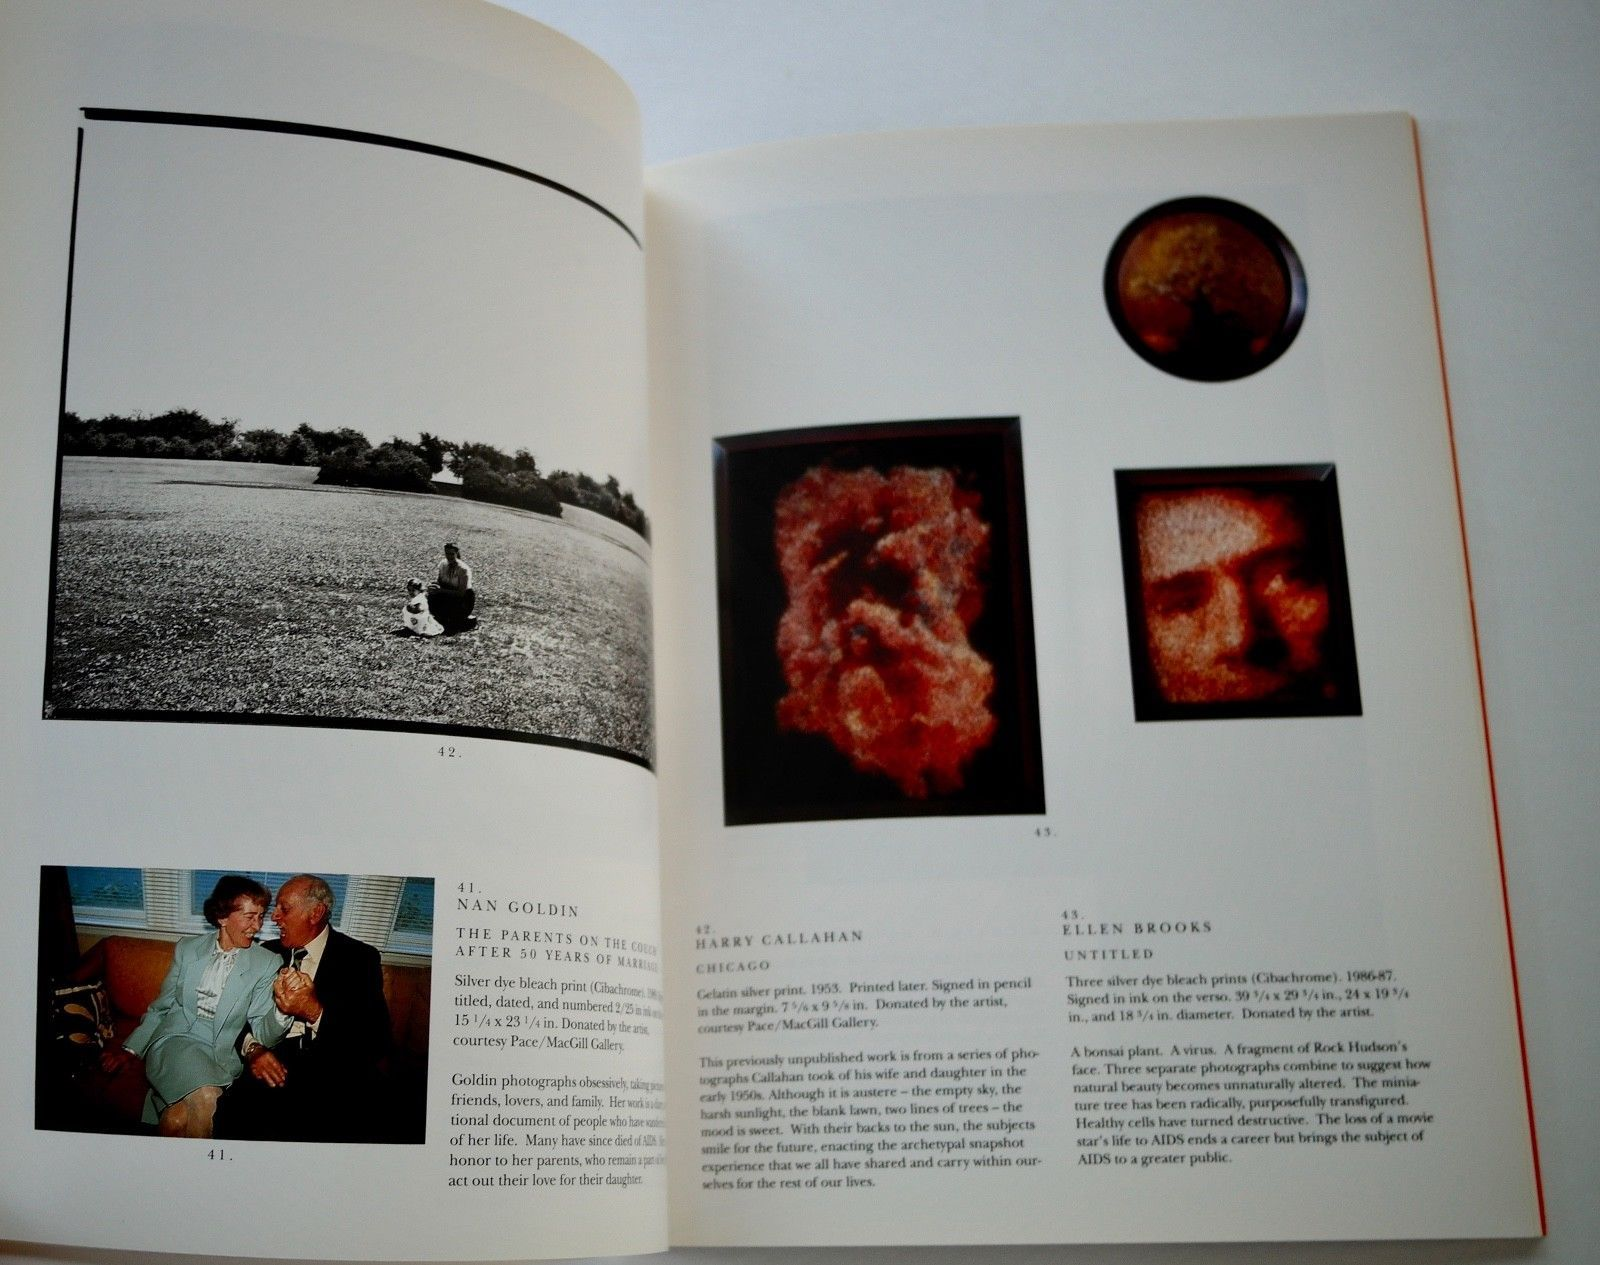 1990 The Indomitable Spirit Phototographers Friends Artists Time of AIDS